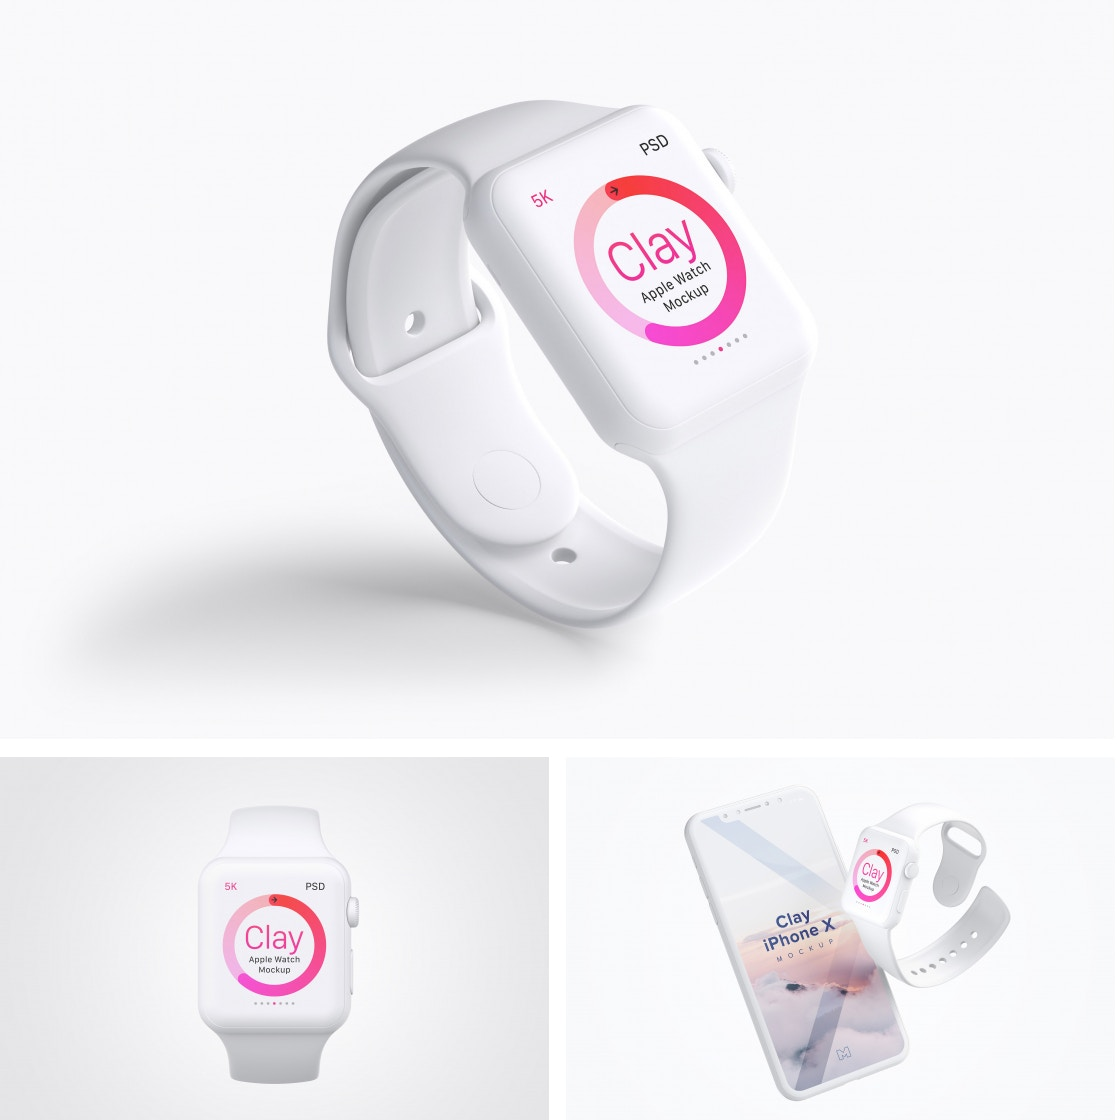 Clay Apple Watch Mockups by Original Mockups on Original Mockups